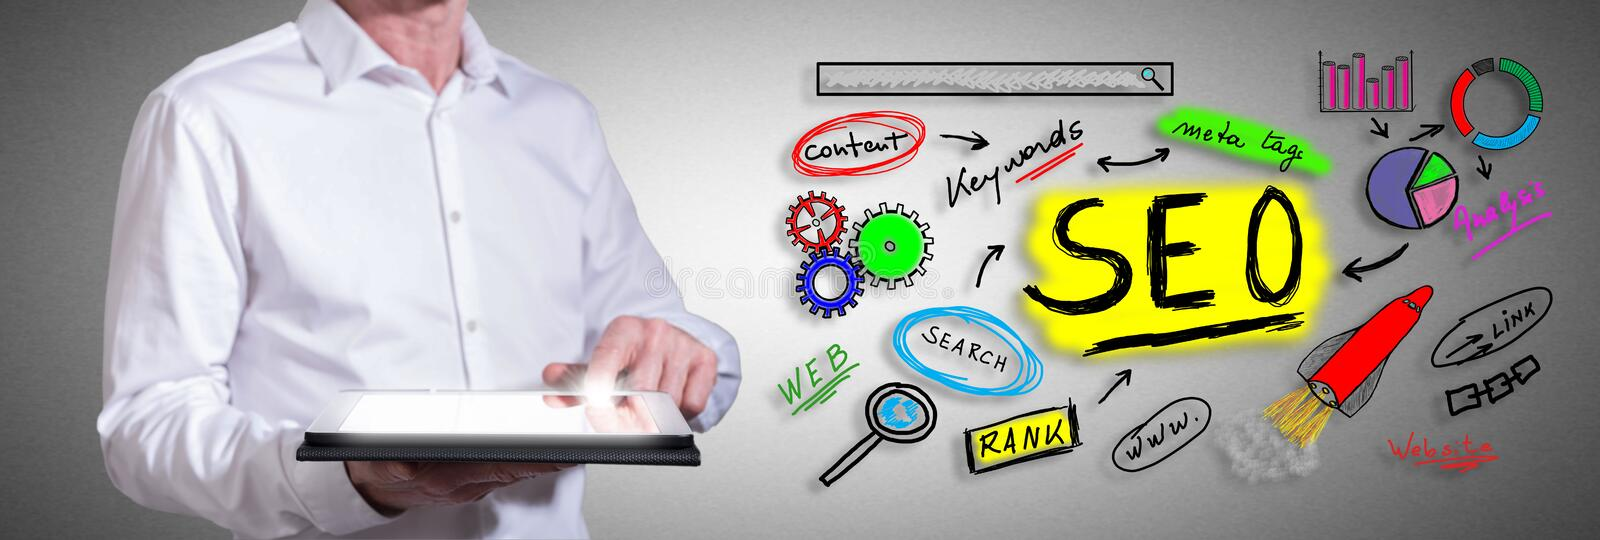 Seo concept with man using a tablet. Man using a tablet with seo concept royalty free stock image